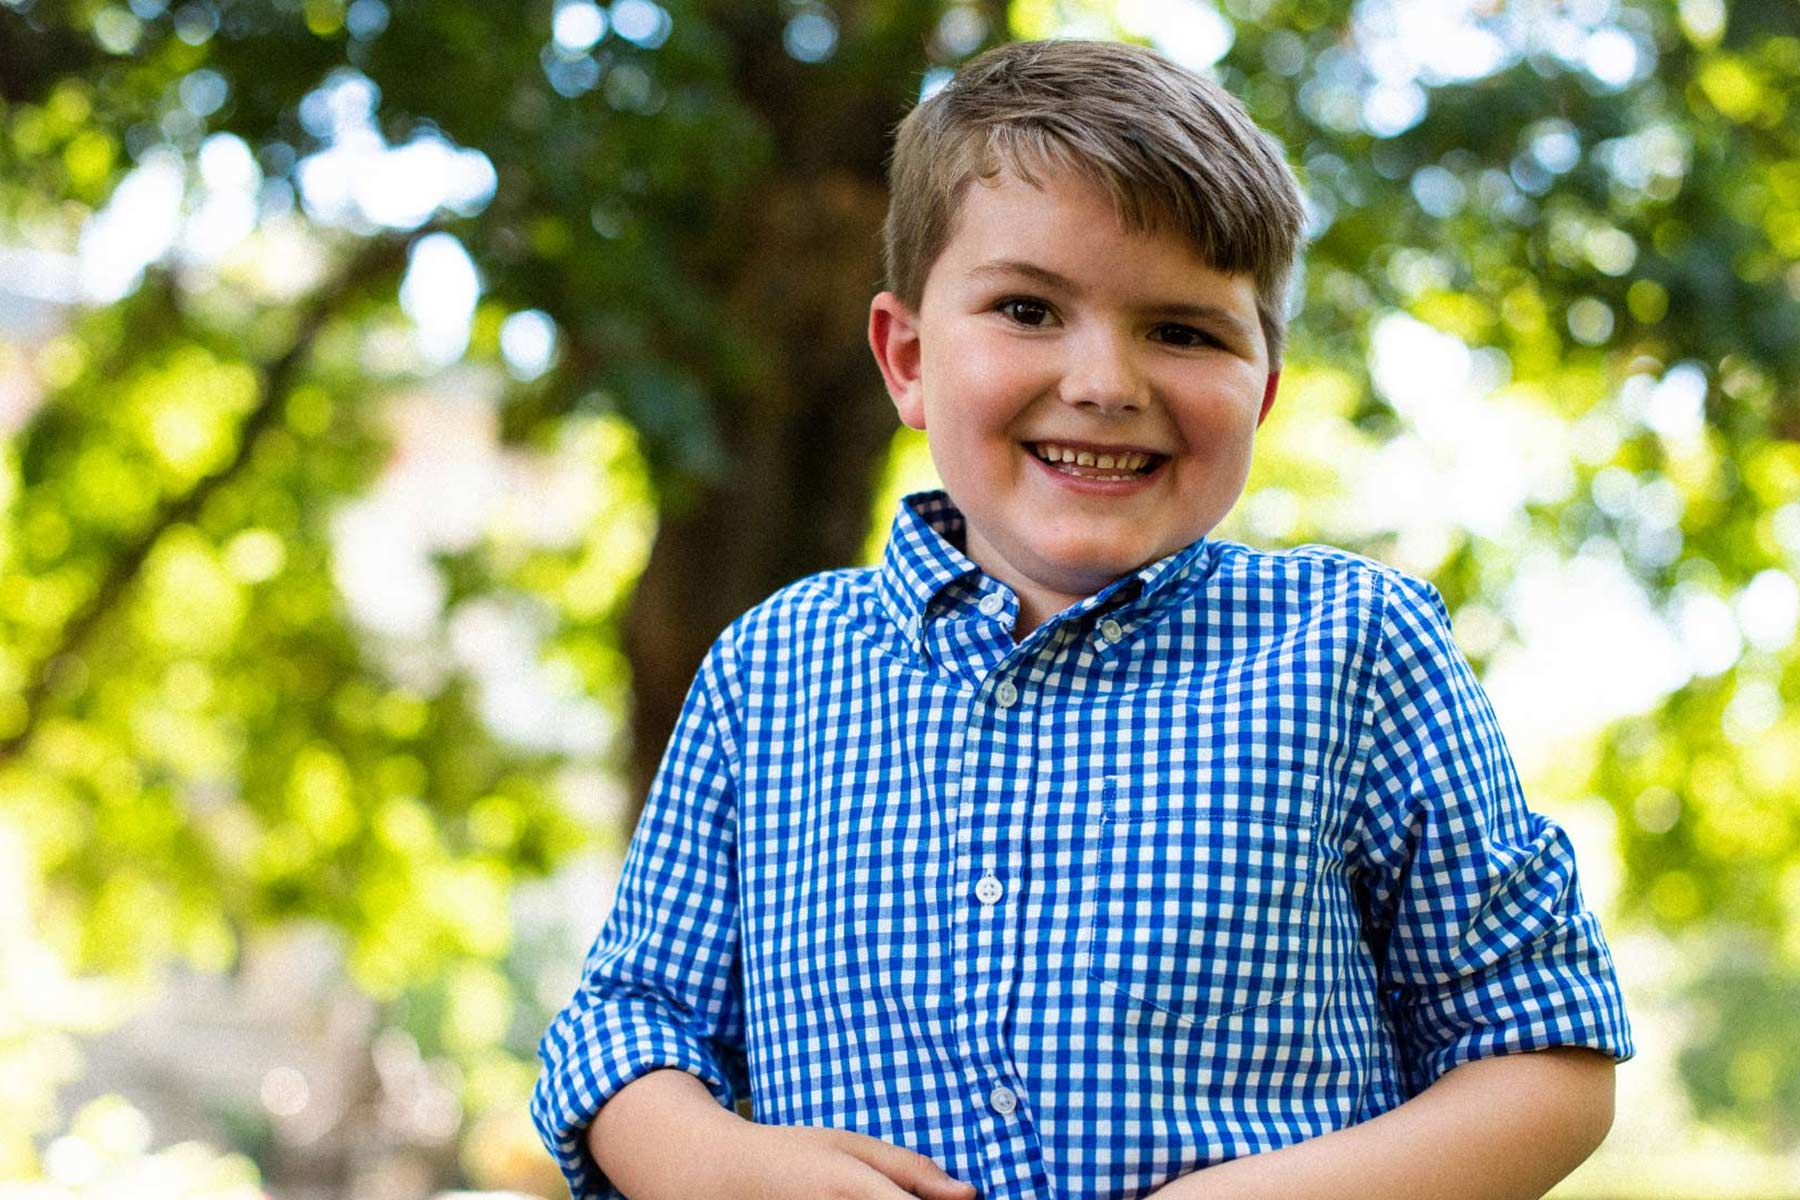 A close up portrait of Elliott, a young boy wearing a blue and white checkered shirt, smiling into the camera while tilting his head slightly.